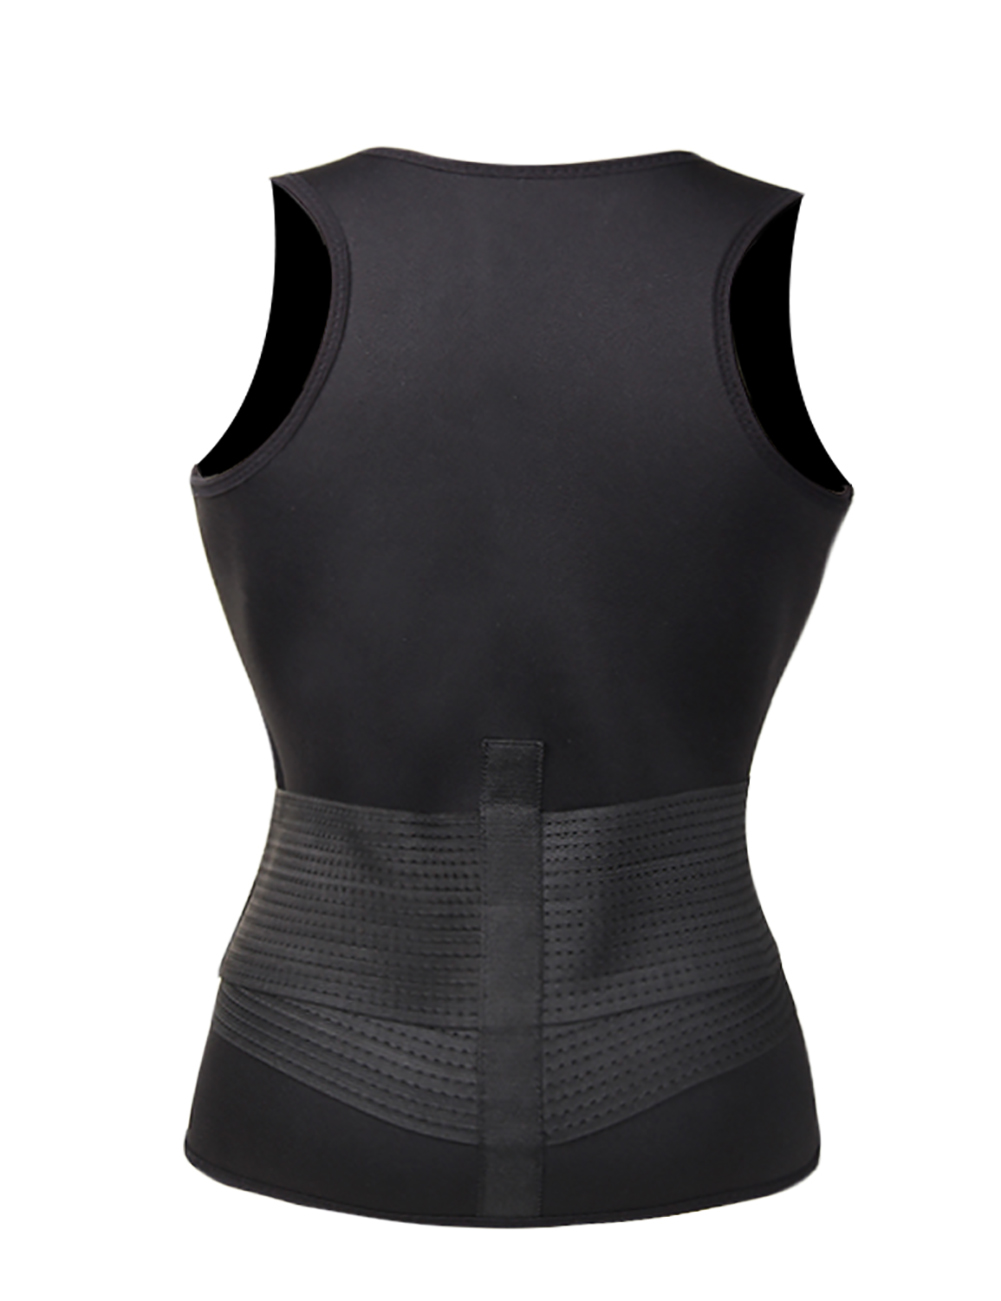 //cdn.affectcloud.com/hexinfashion/upload/imgs/Shapewear/Neoprene_Waist_Trainer/LB4977/LB4977-201911115dc8c3b2bfe6b.jpg